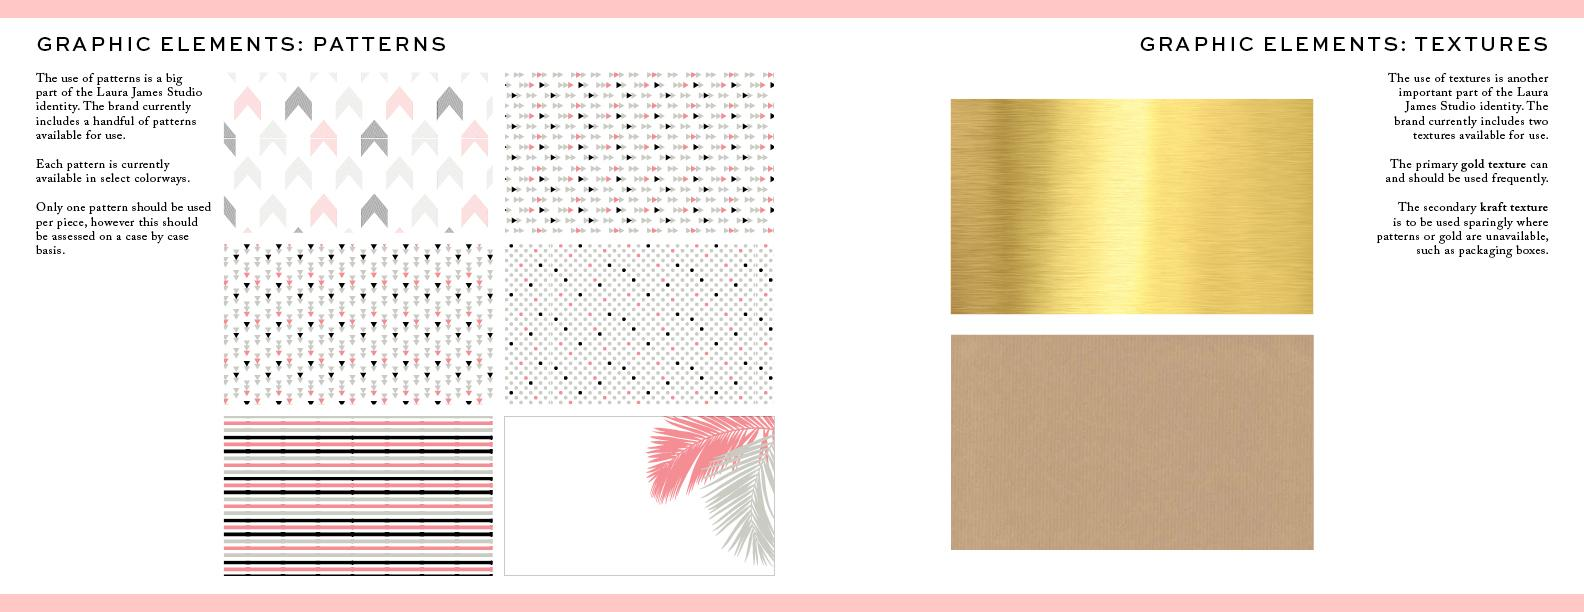 Laura James Studio Brand guide - image 10 - student project